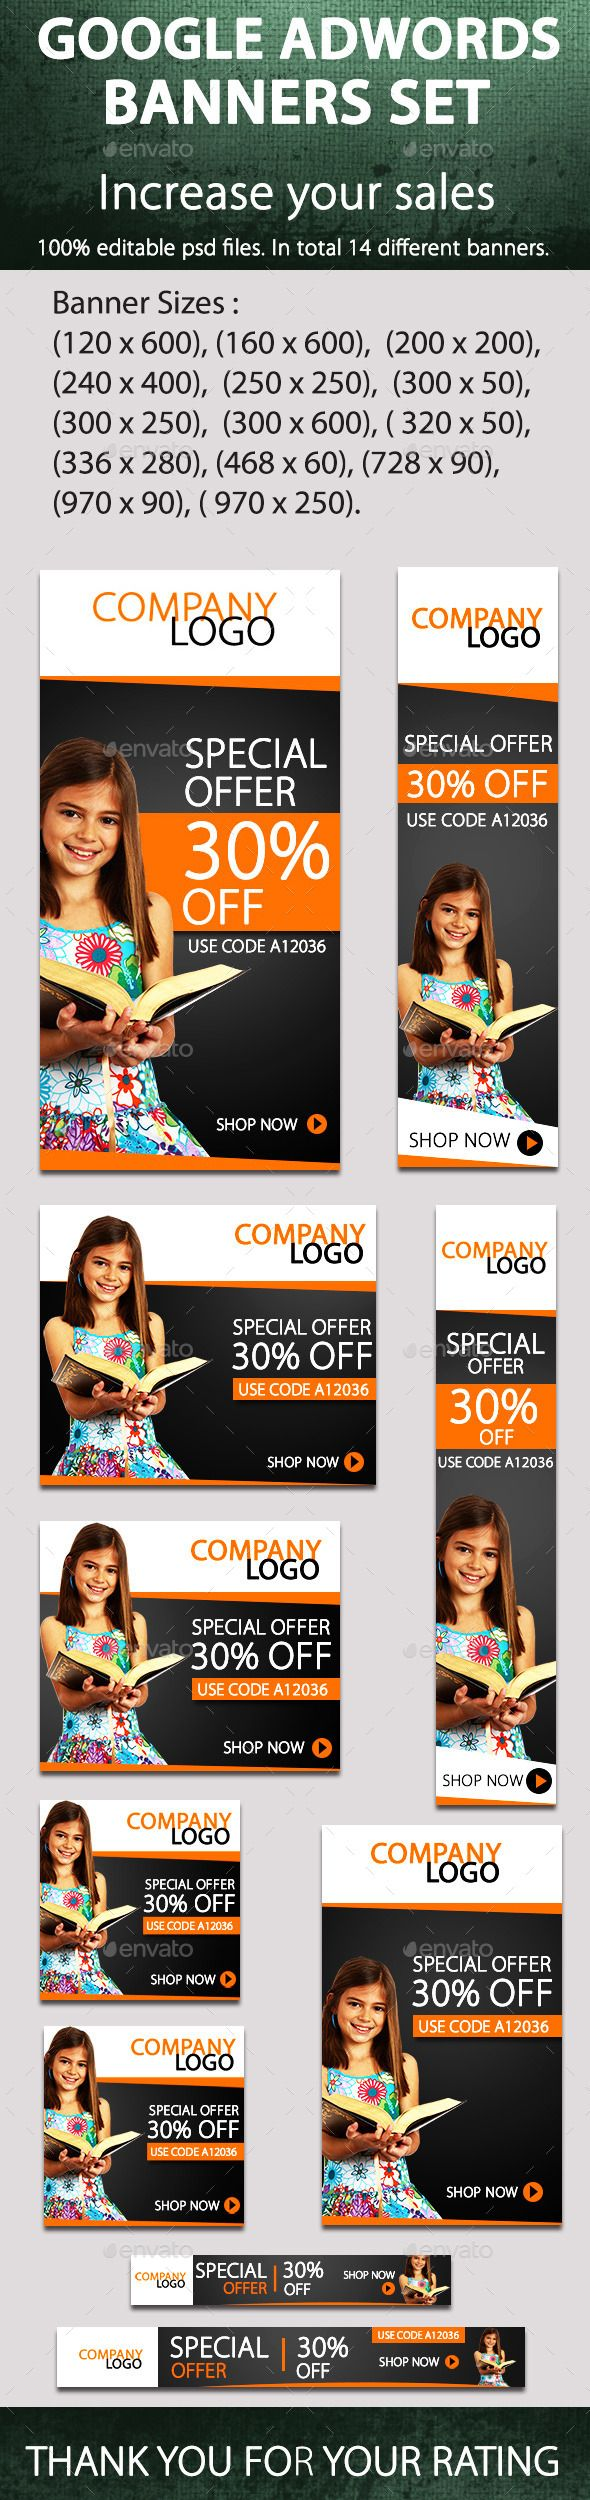 Promotional Banners - Banners & Ads Web Template PSD. Download here: http://graphicriver.net/item/promotional-banners/9067284?s_rank=1322&ref=yinkira